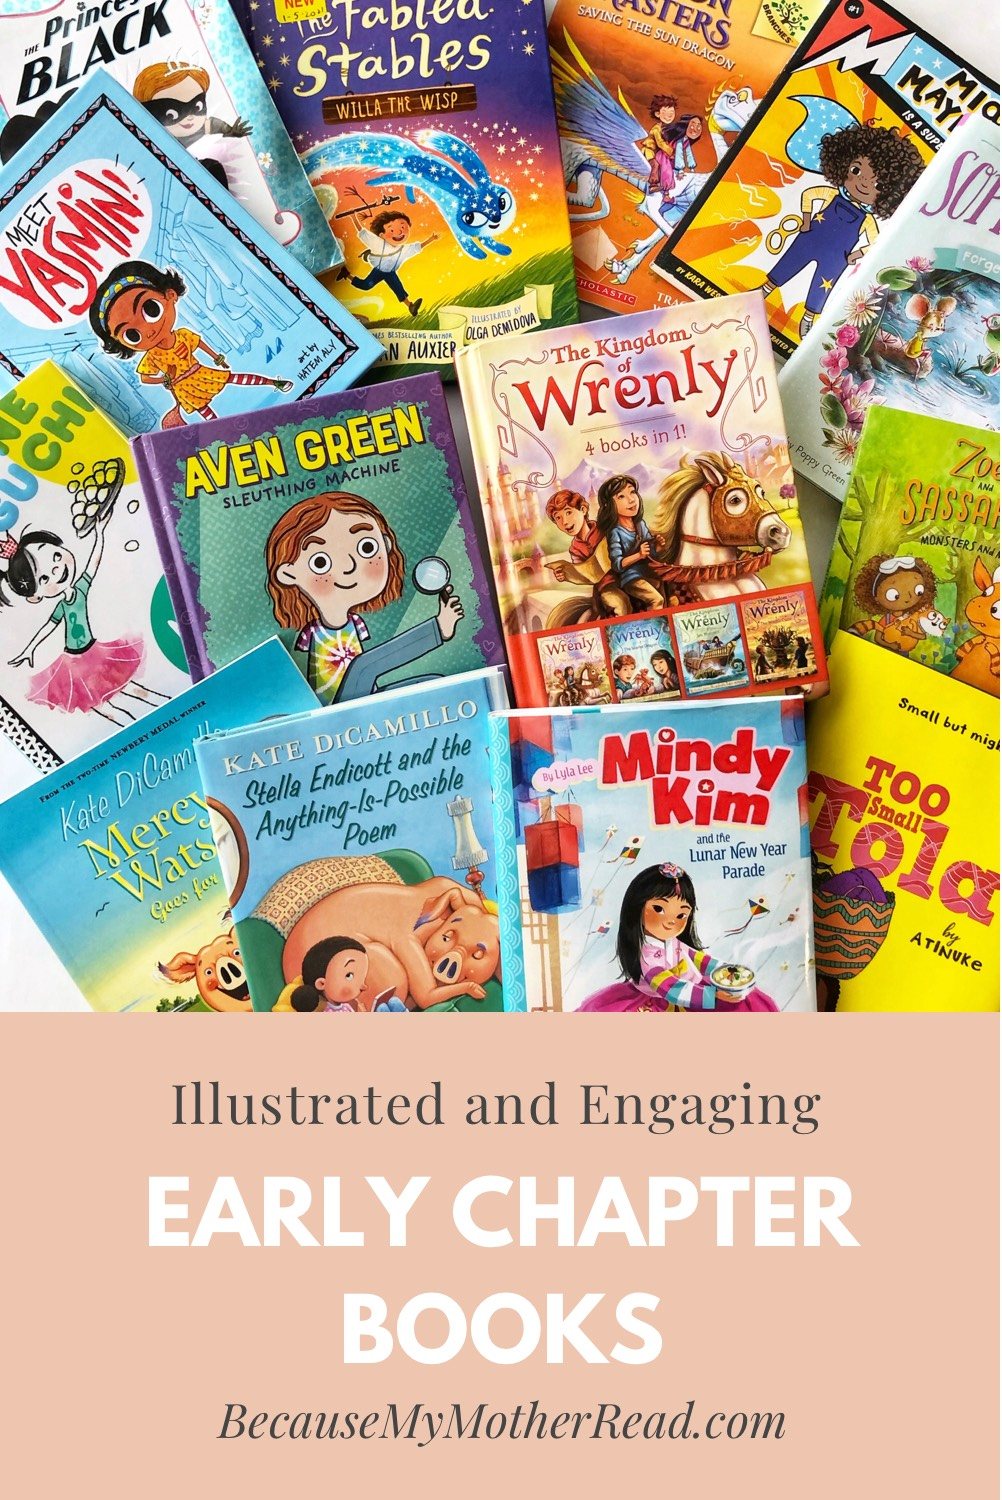 Early Chapter Books for Newly Independent Readers